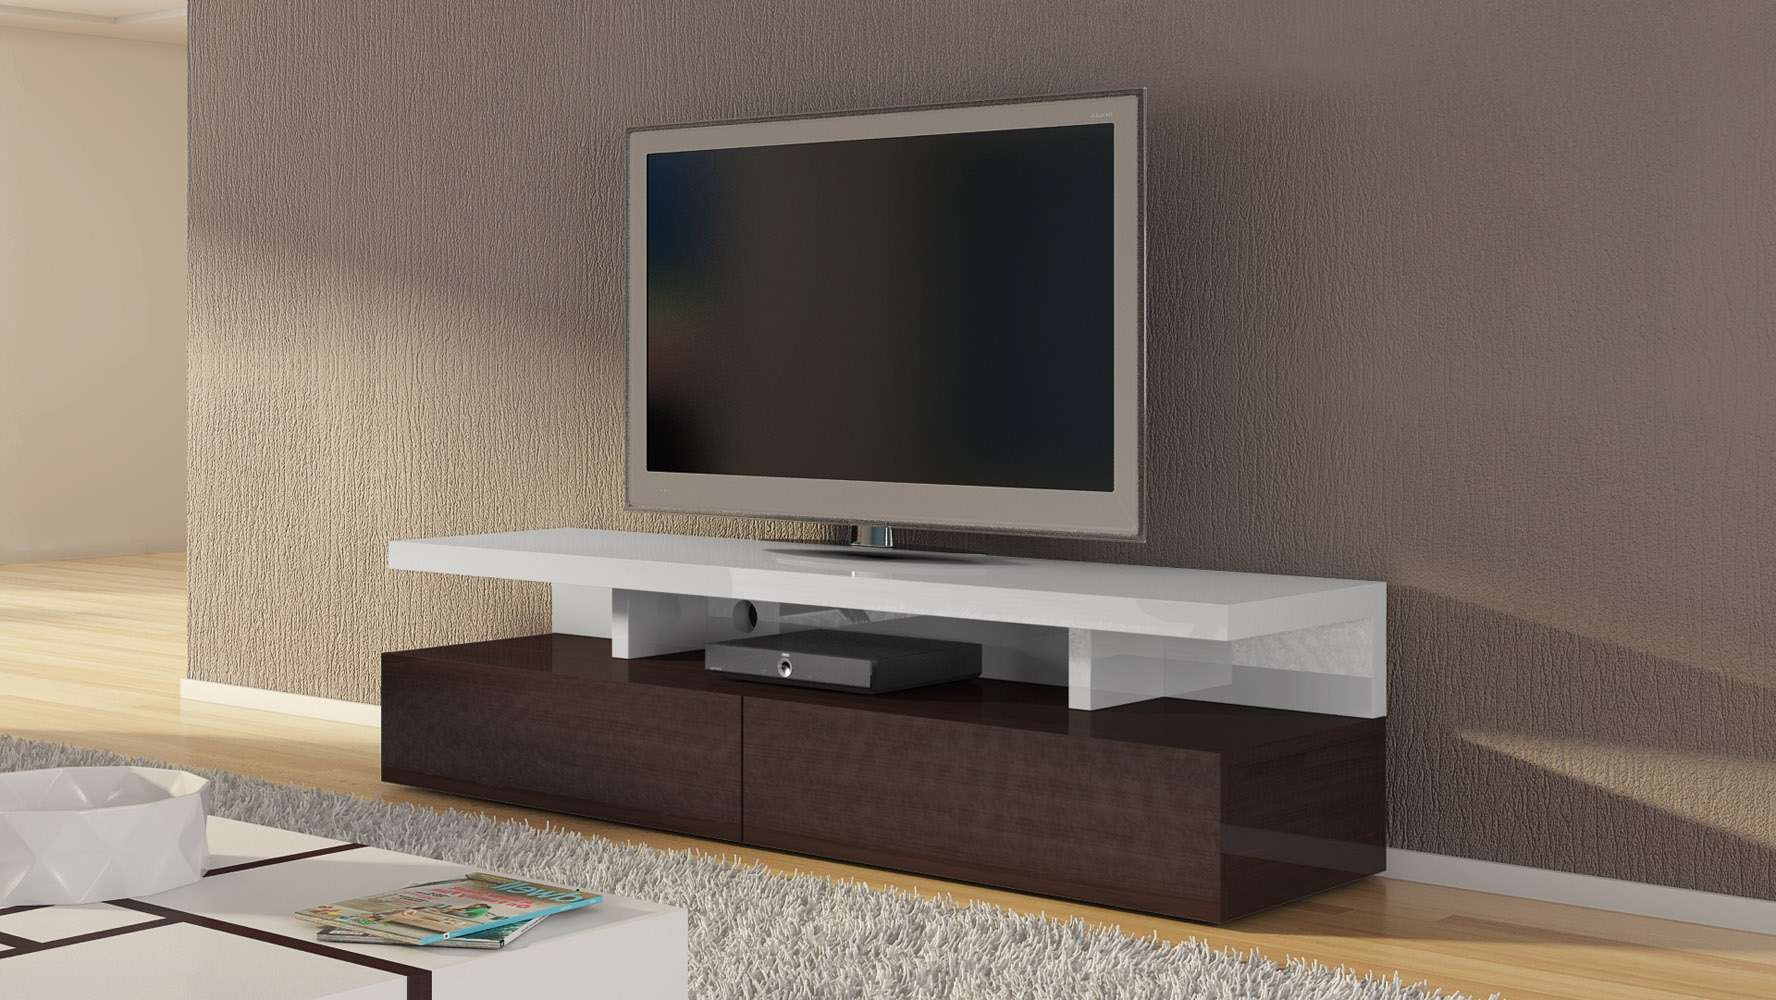 Dark Wood And White High Gloss Lacquer Mcintosh 71 Inch Tv Stand Inside High Gloss White Tv Stands (View 6 of 15)